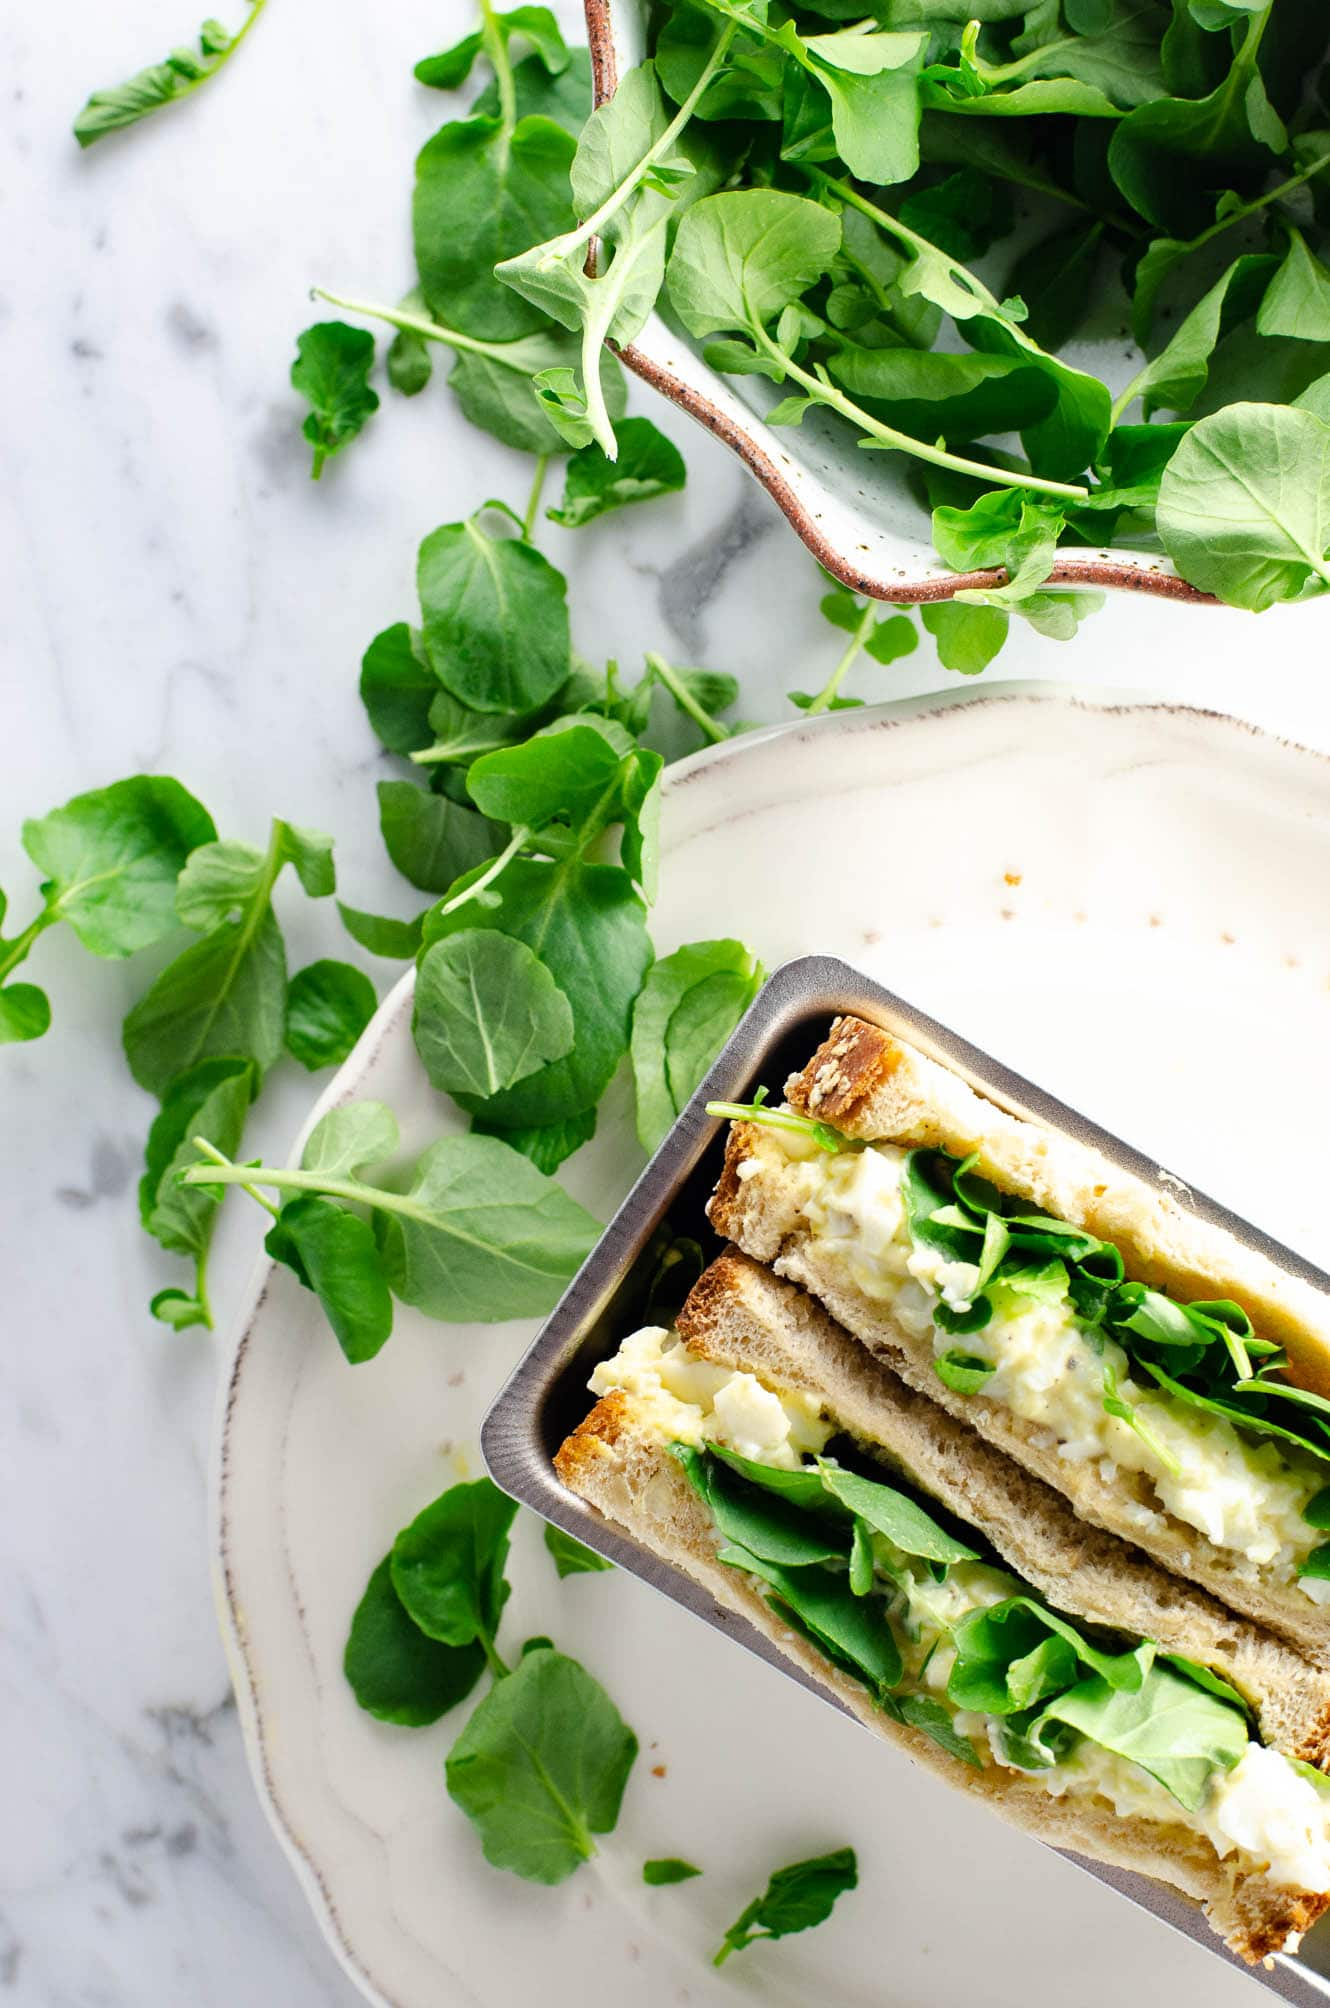 Egg and Watercress Sandwich (Egg and Cress) | Umami Girl